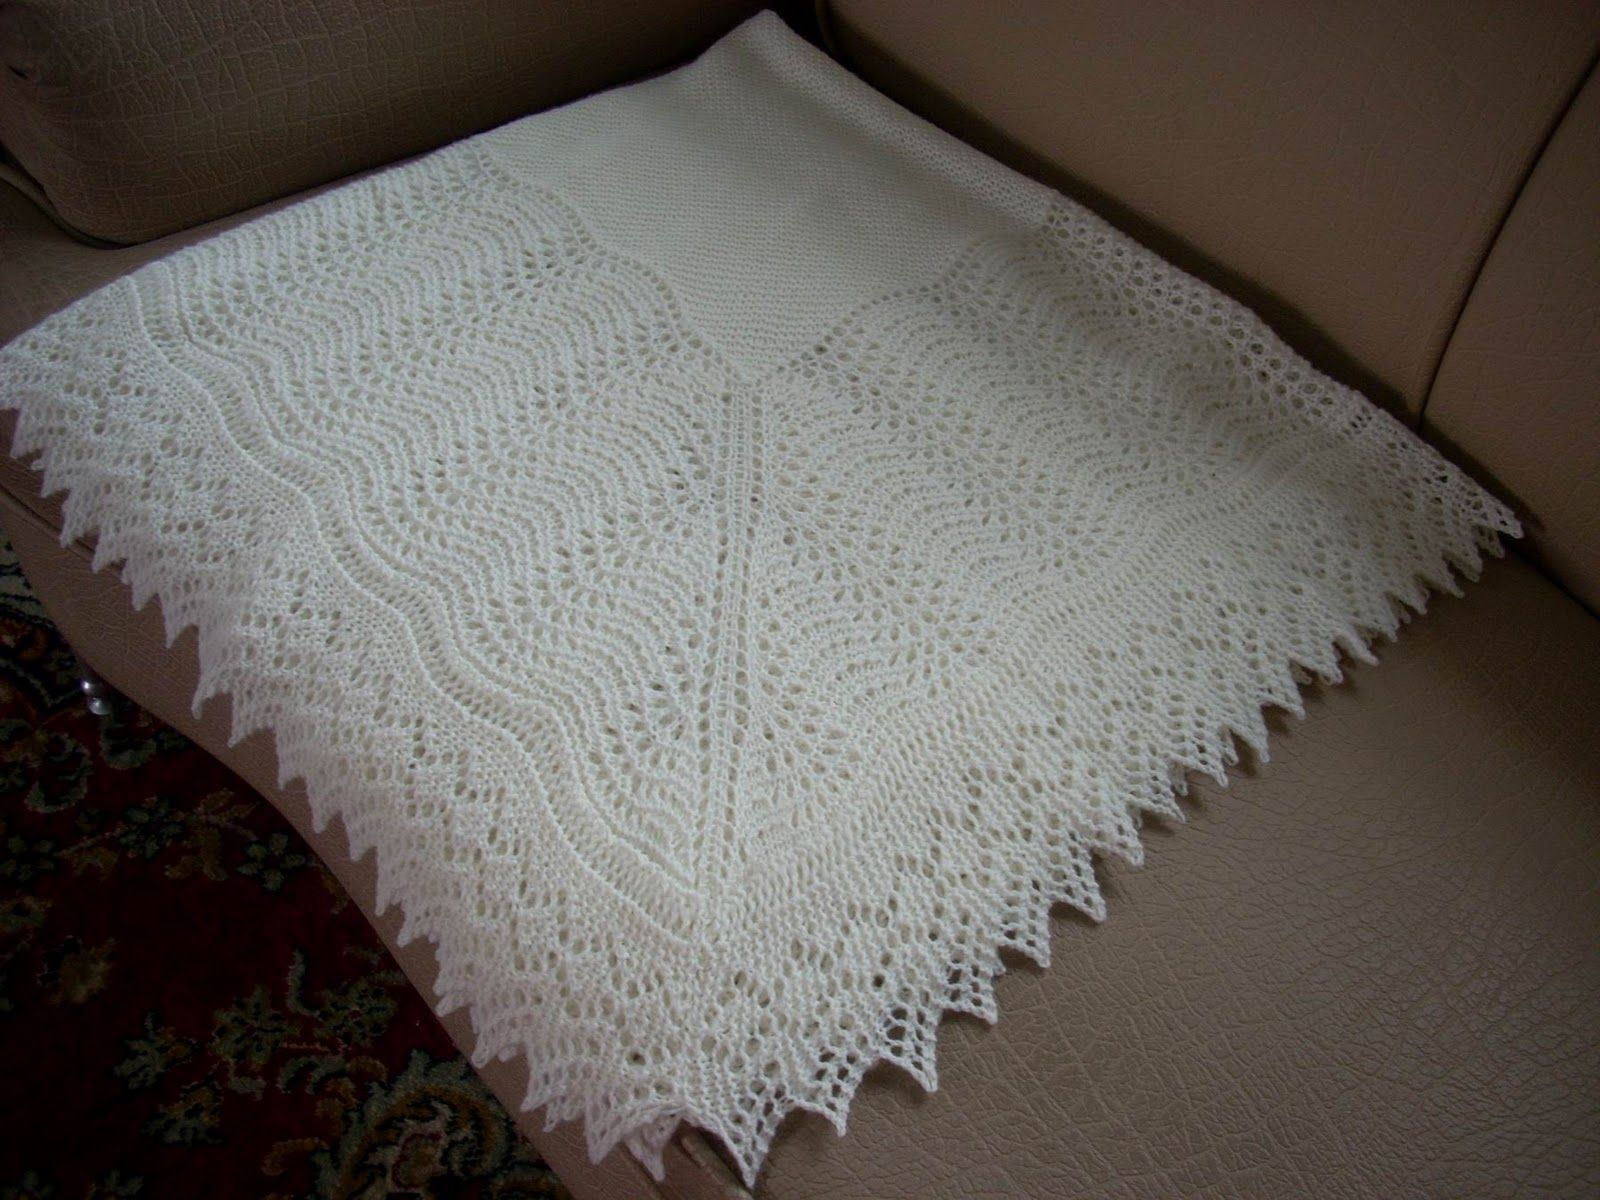 knitting patterns for baby blankets | Coming back to the ...